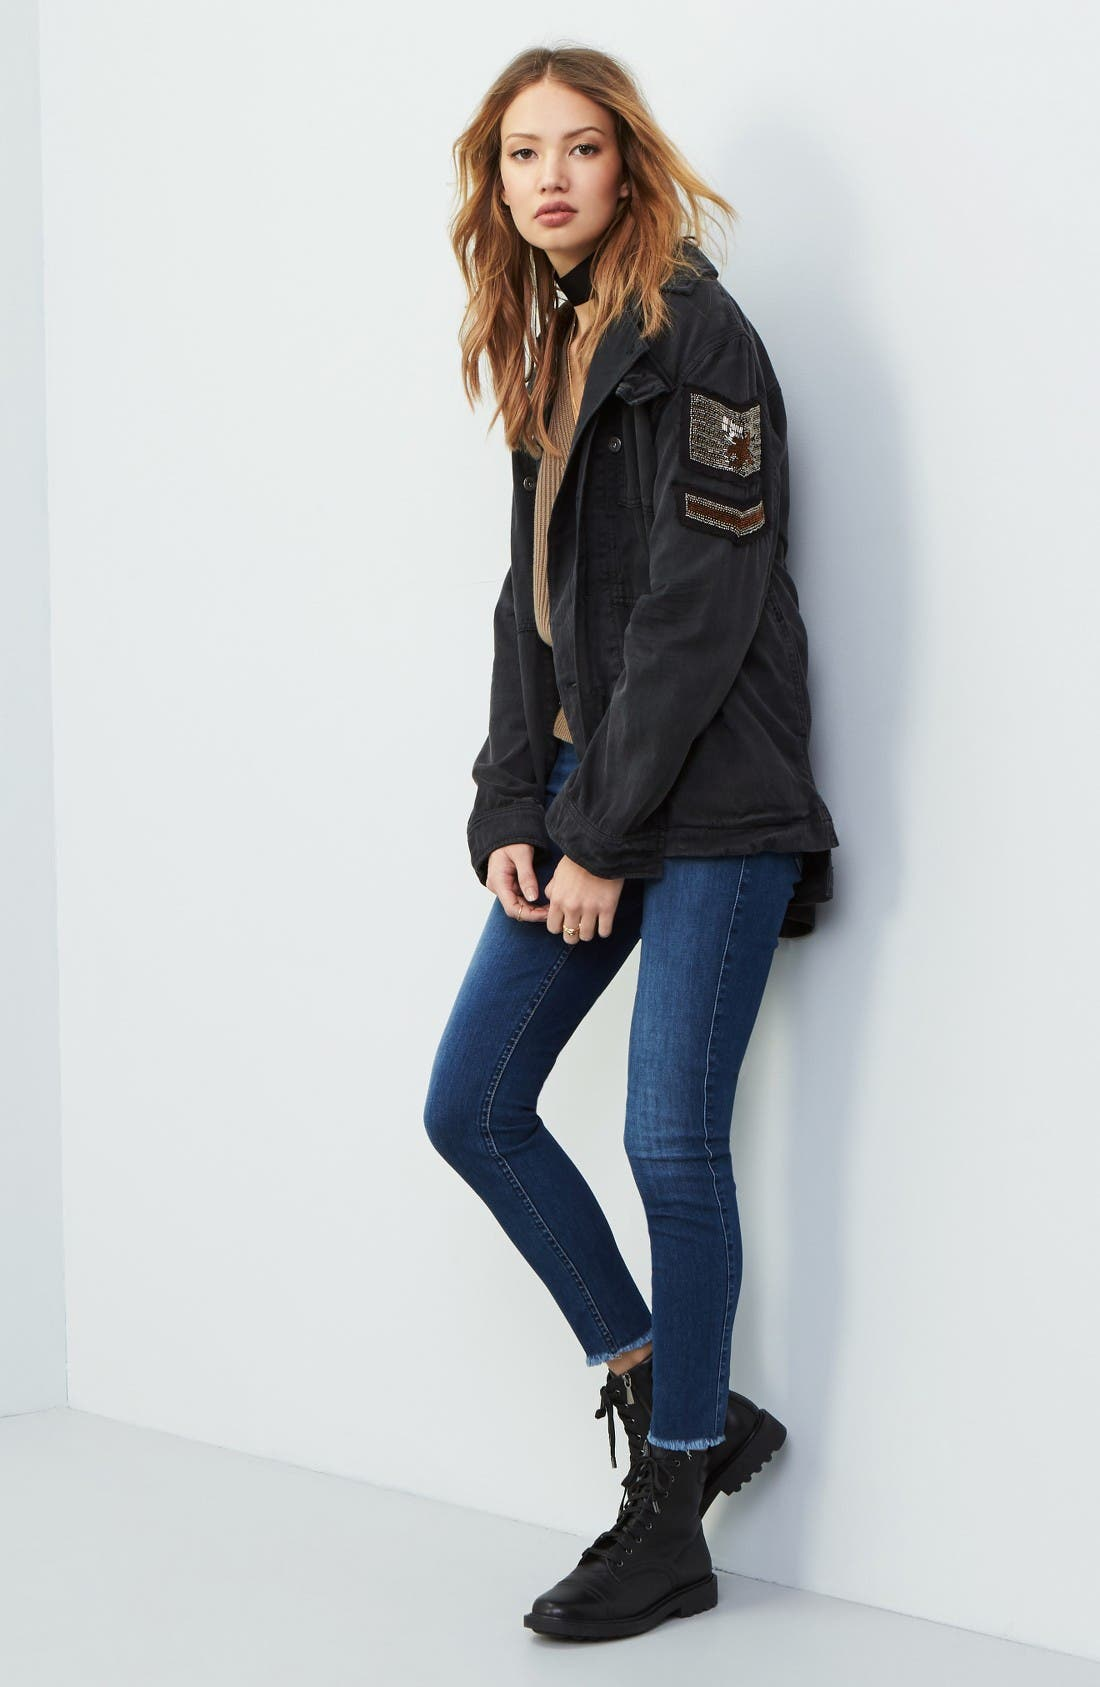 Free People Shirt Jacket, Pullover & 7 For All Mankind® Jeans Outfit with Accessories